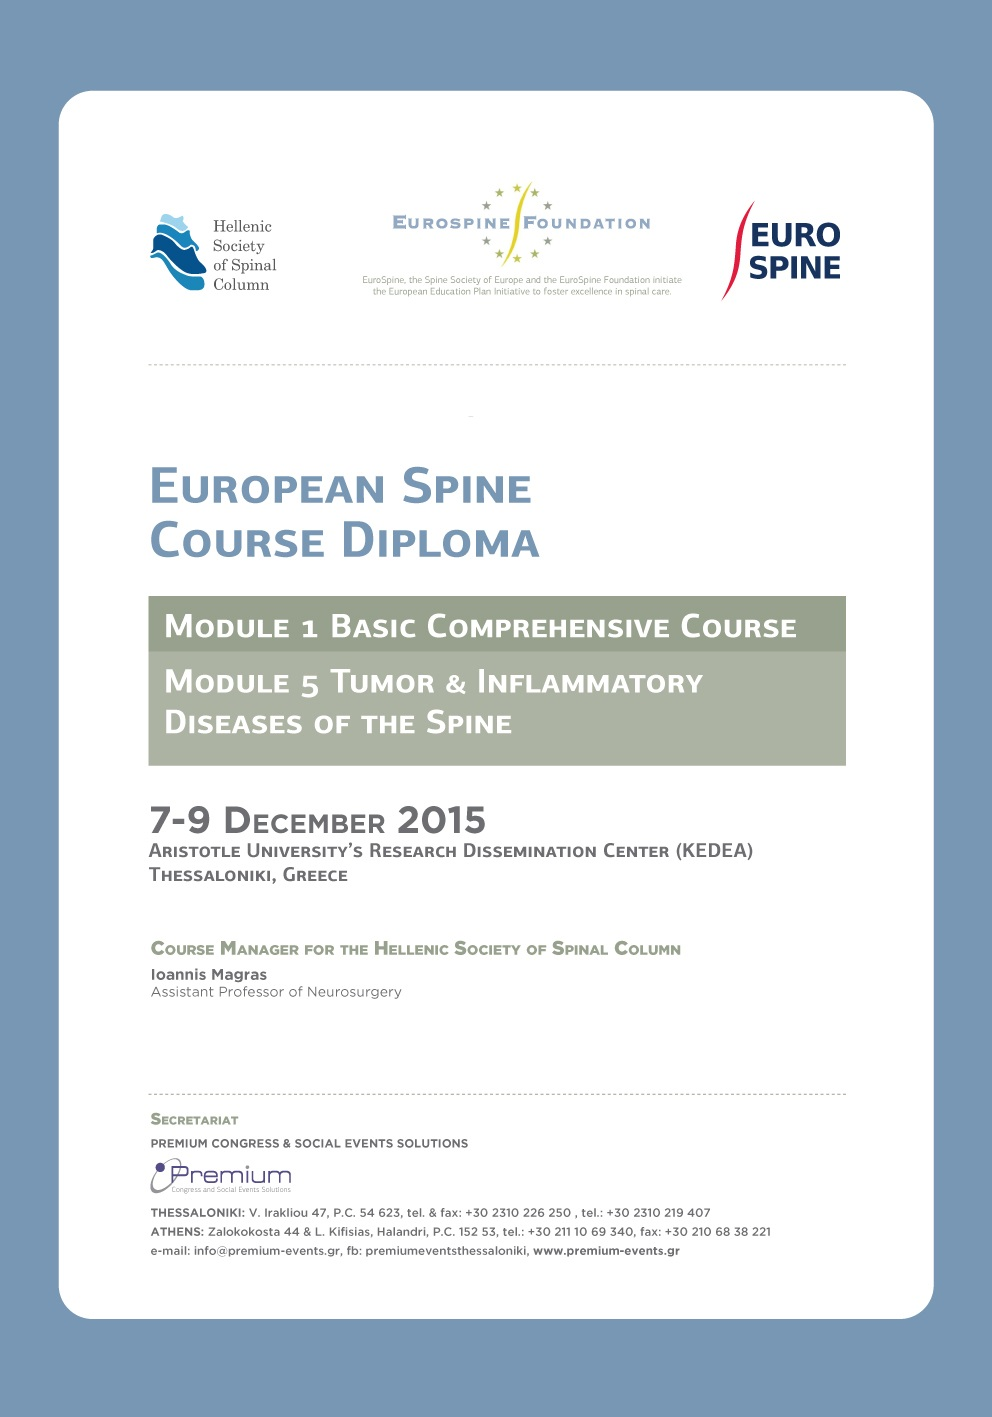 eurospine-foundation-poster-2015